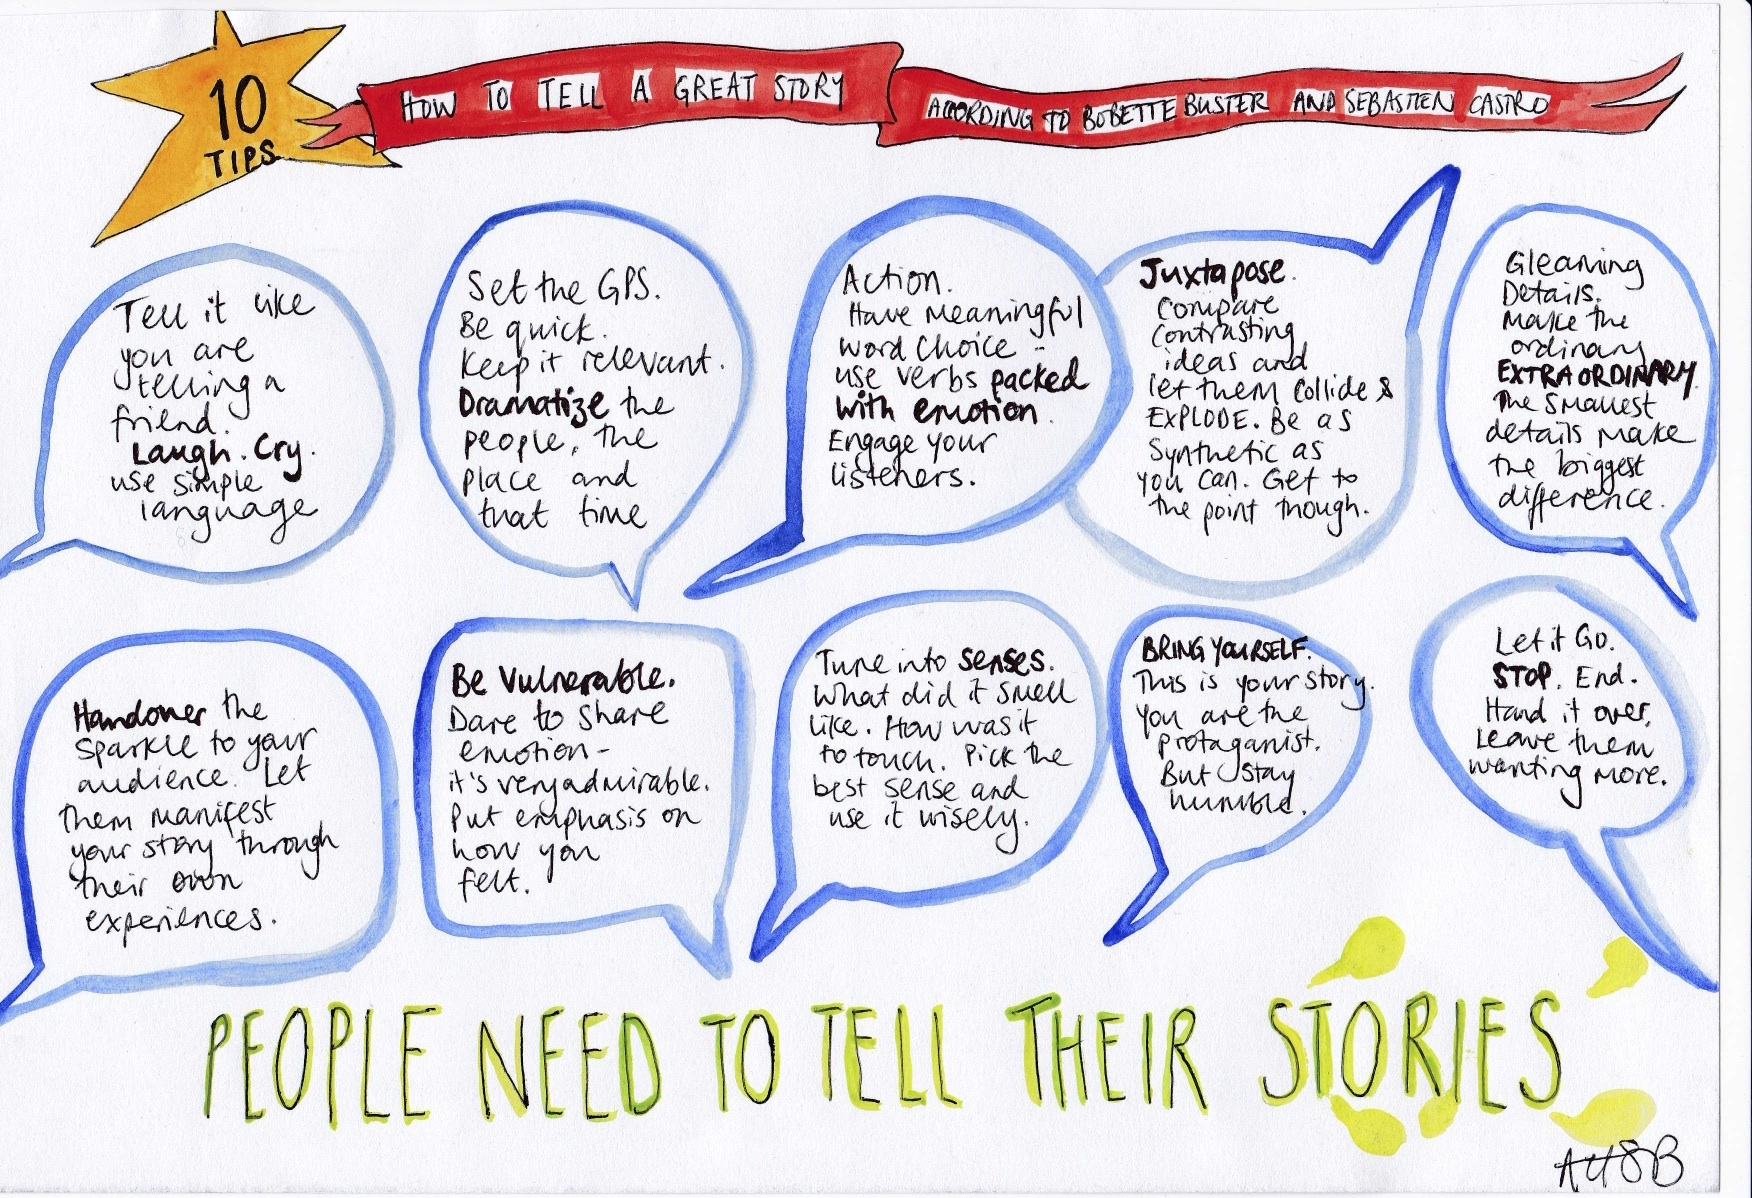 10 tips to telling your story.jpg